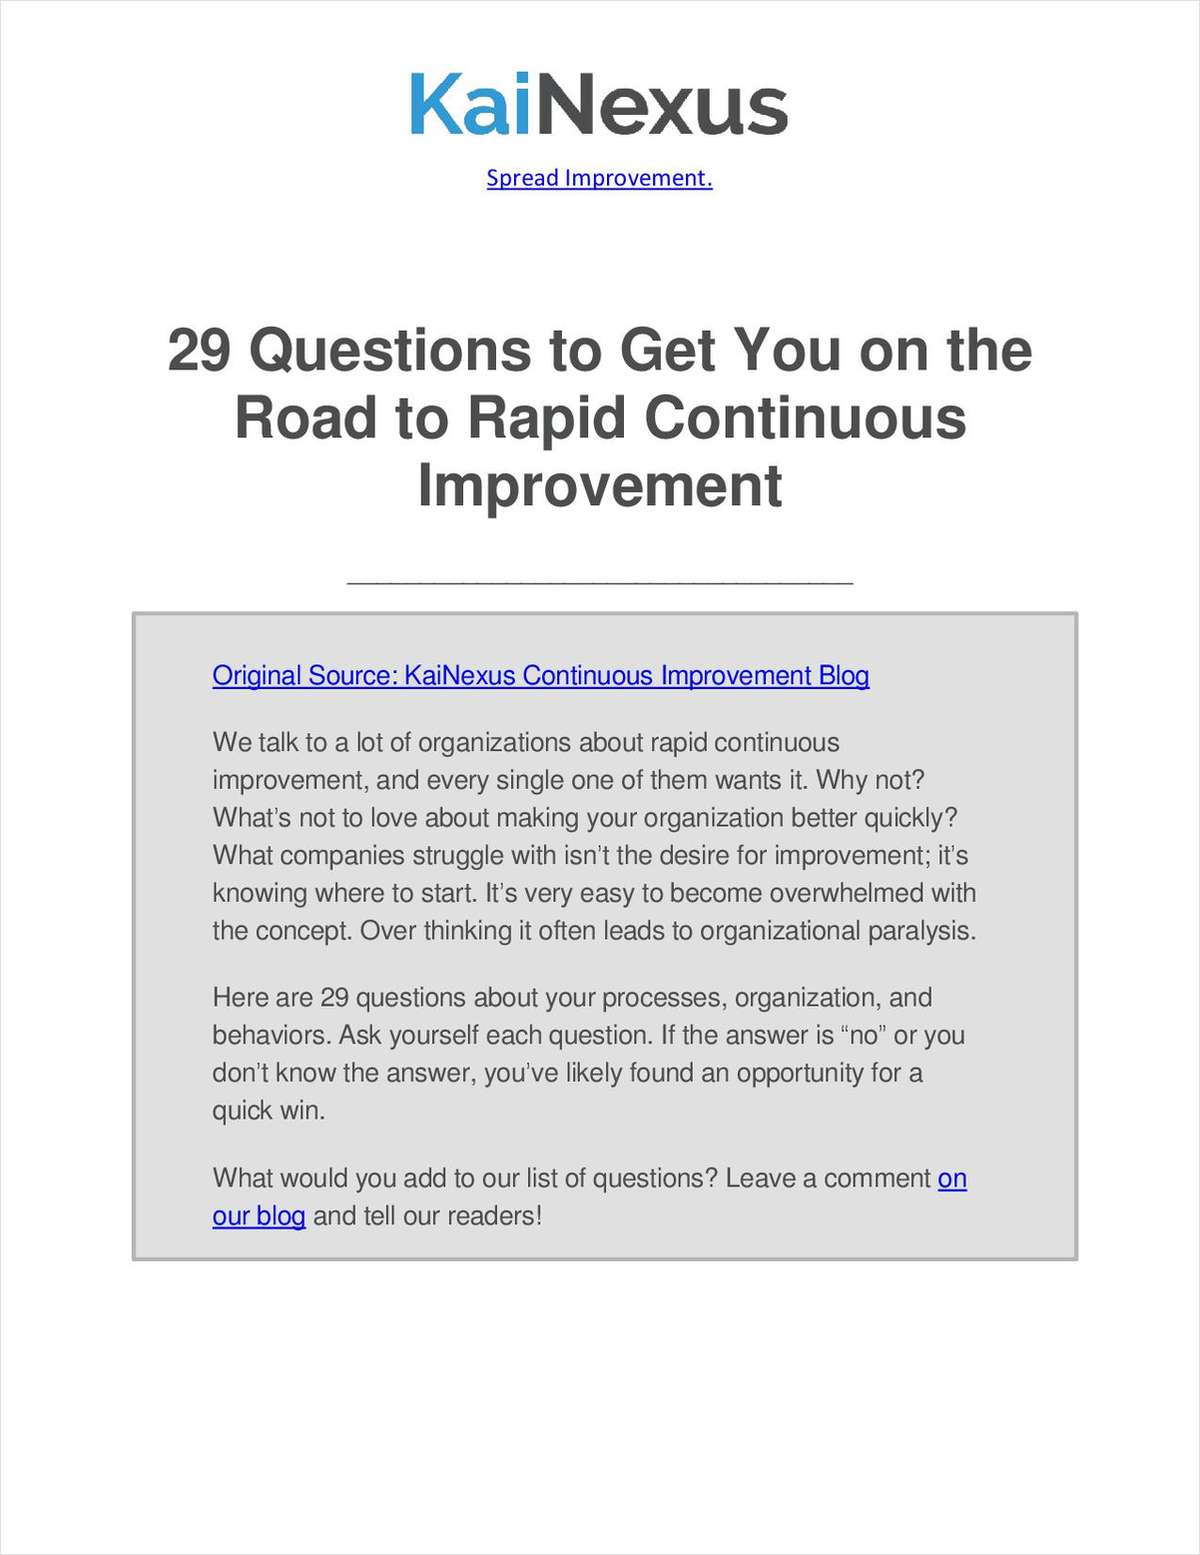 29 Questions to Get You on the Road to Rapid Continuous Improvement